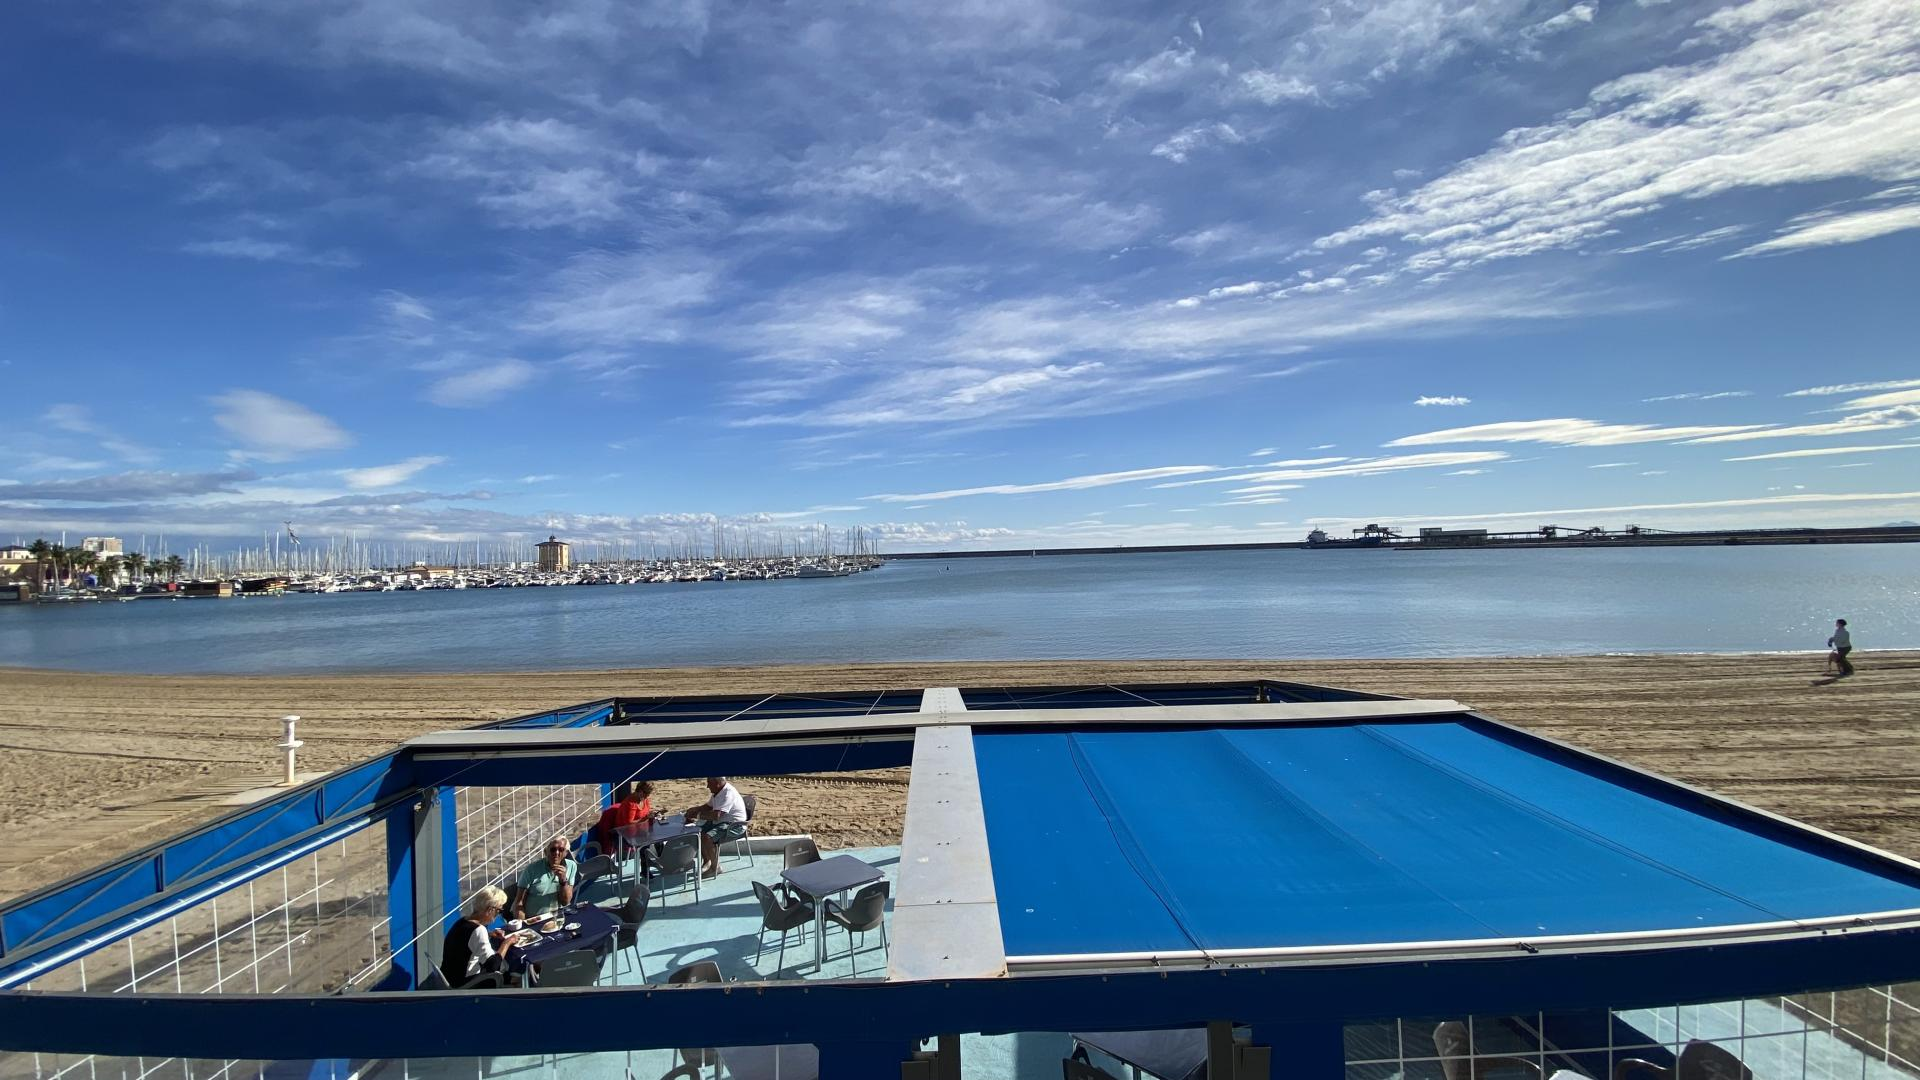 Apartment in Torrevieja (Alicante)